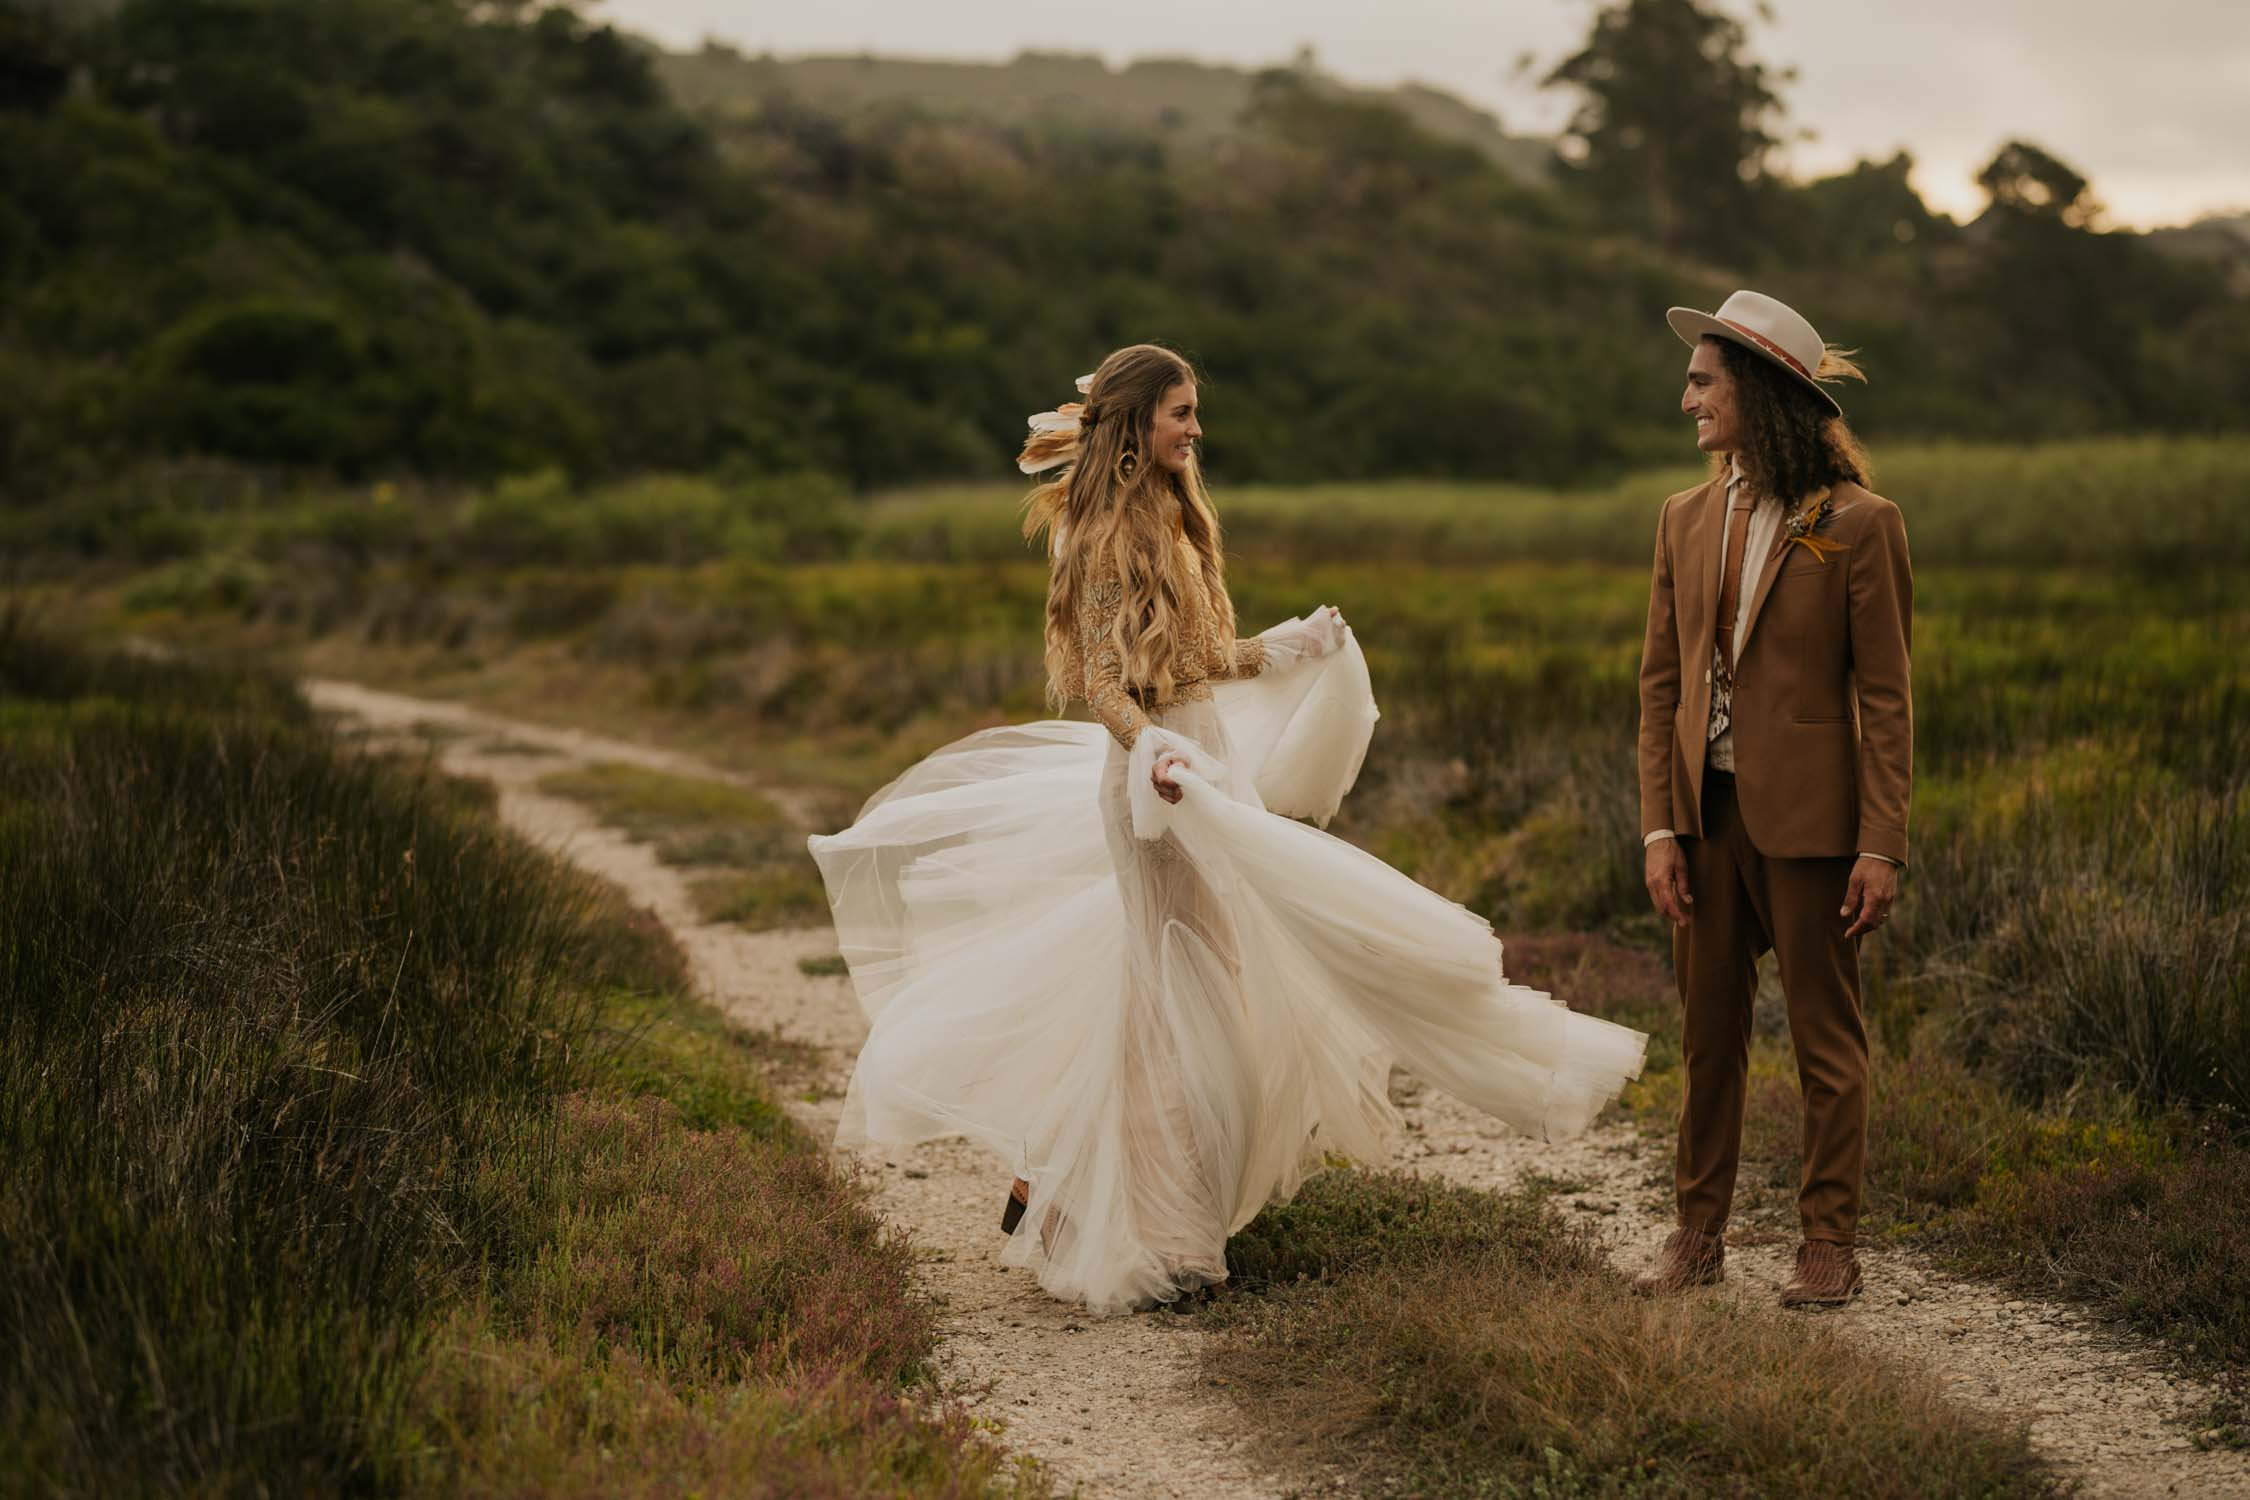 Award winning Vancouver Wedding Photographer takes amazing romantic photo of boho bride spinning for groom at destination wedding